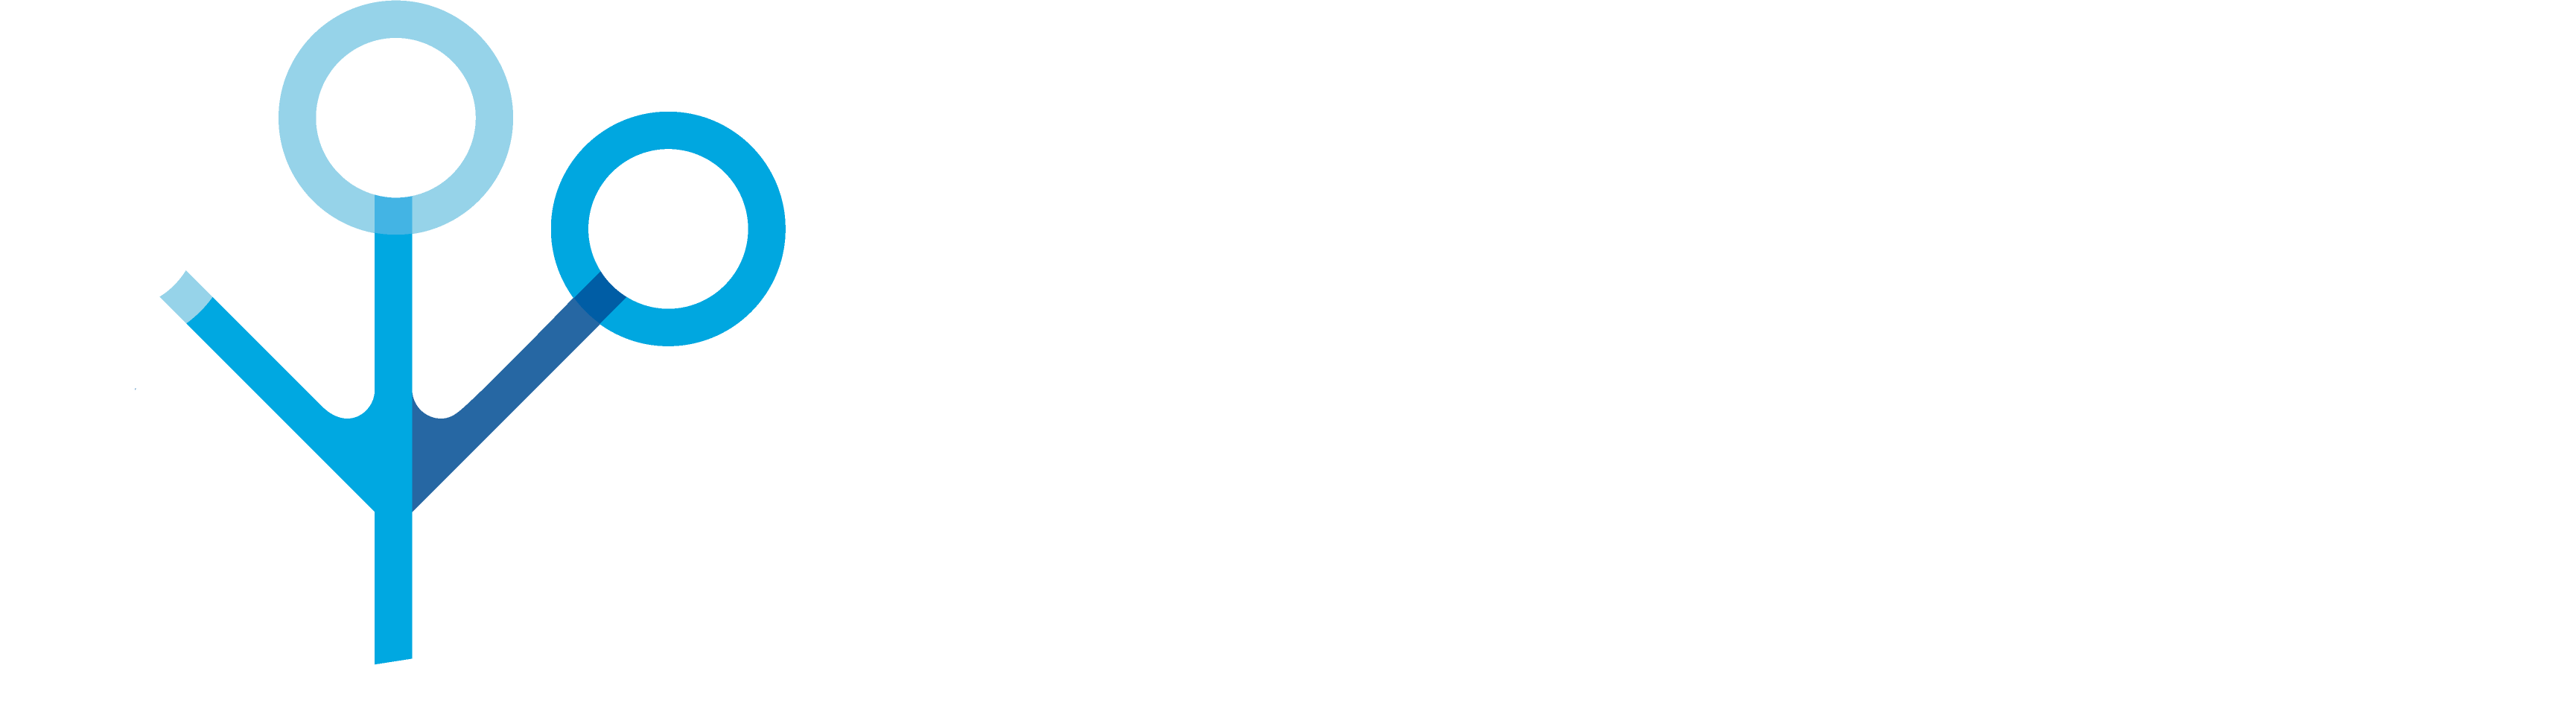 Swallowing Innovations Lab